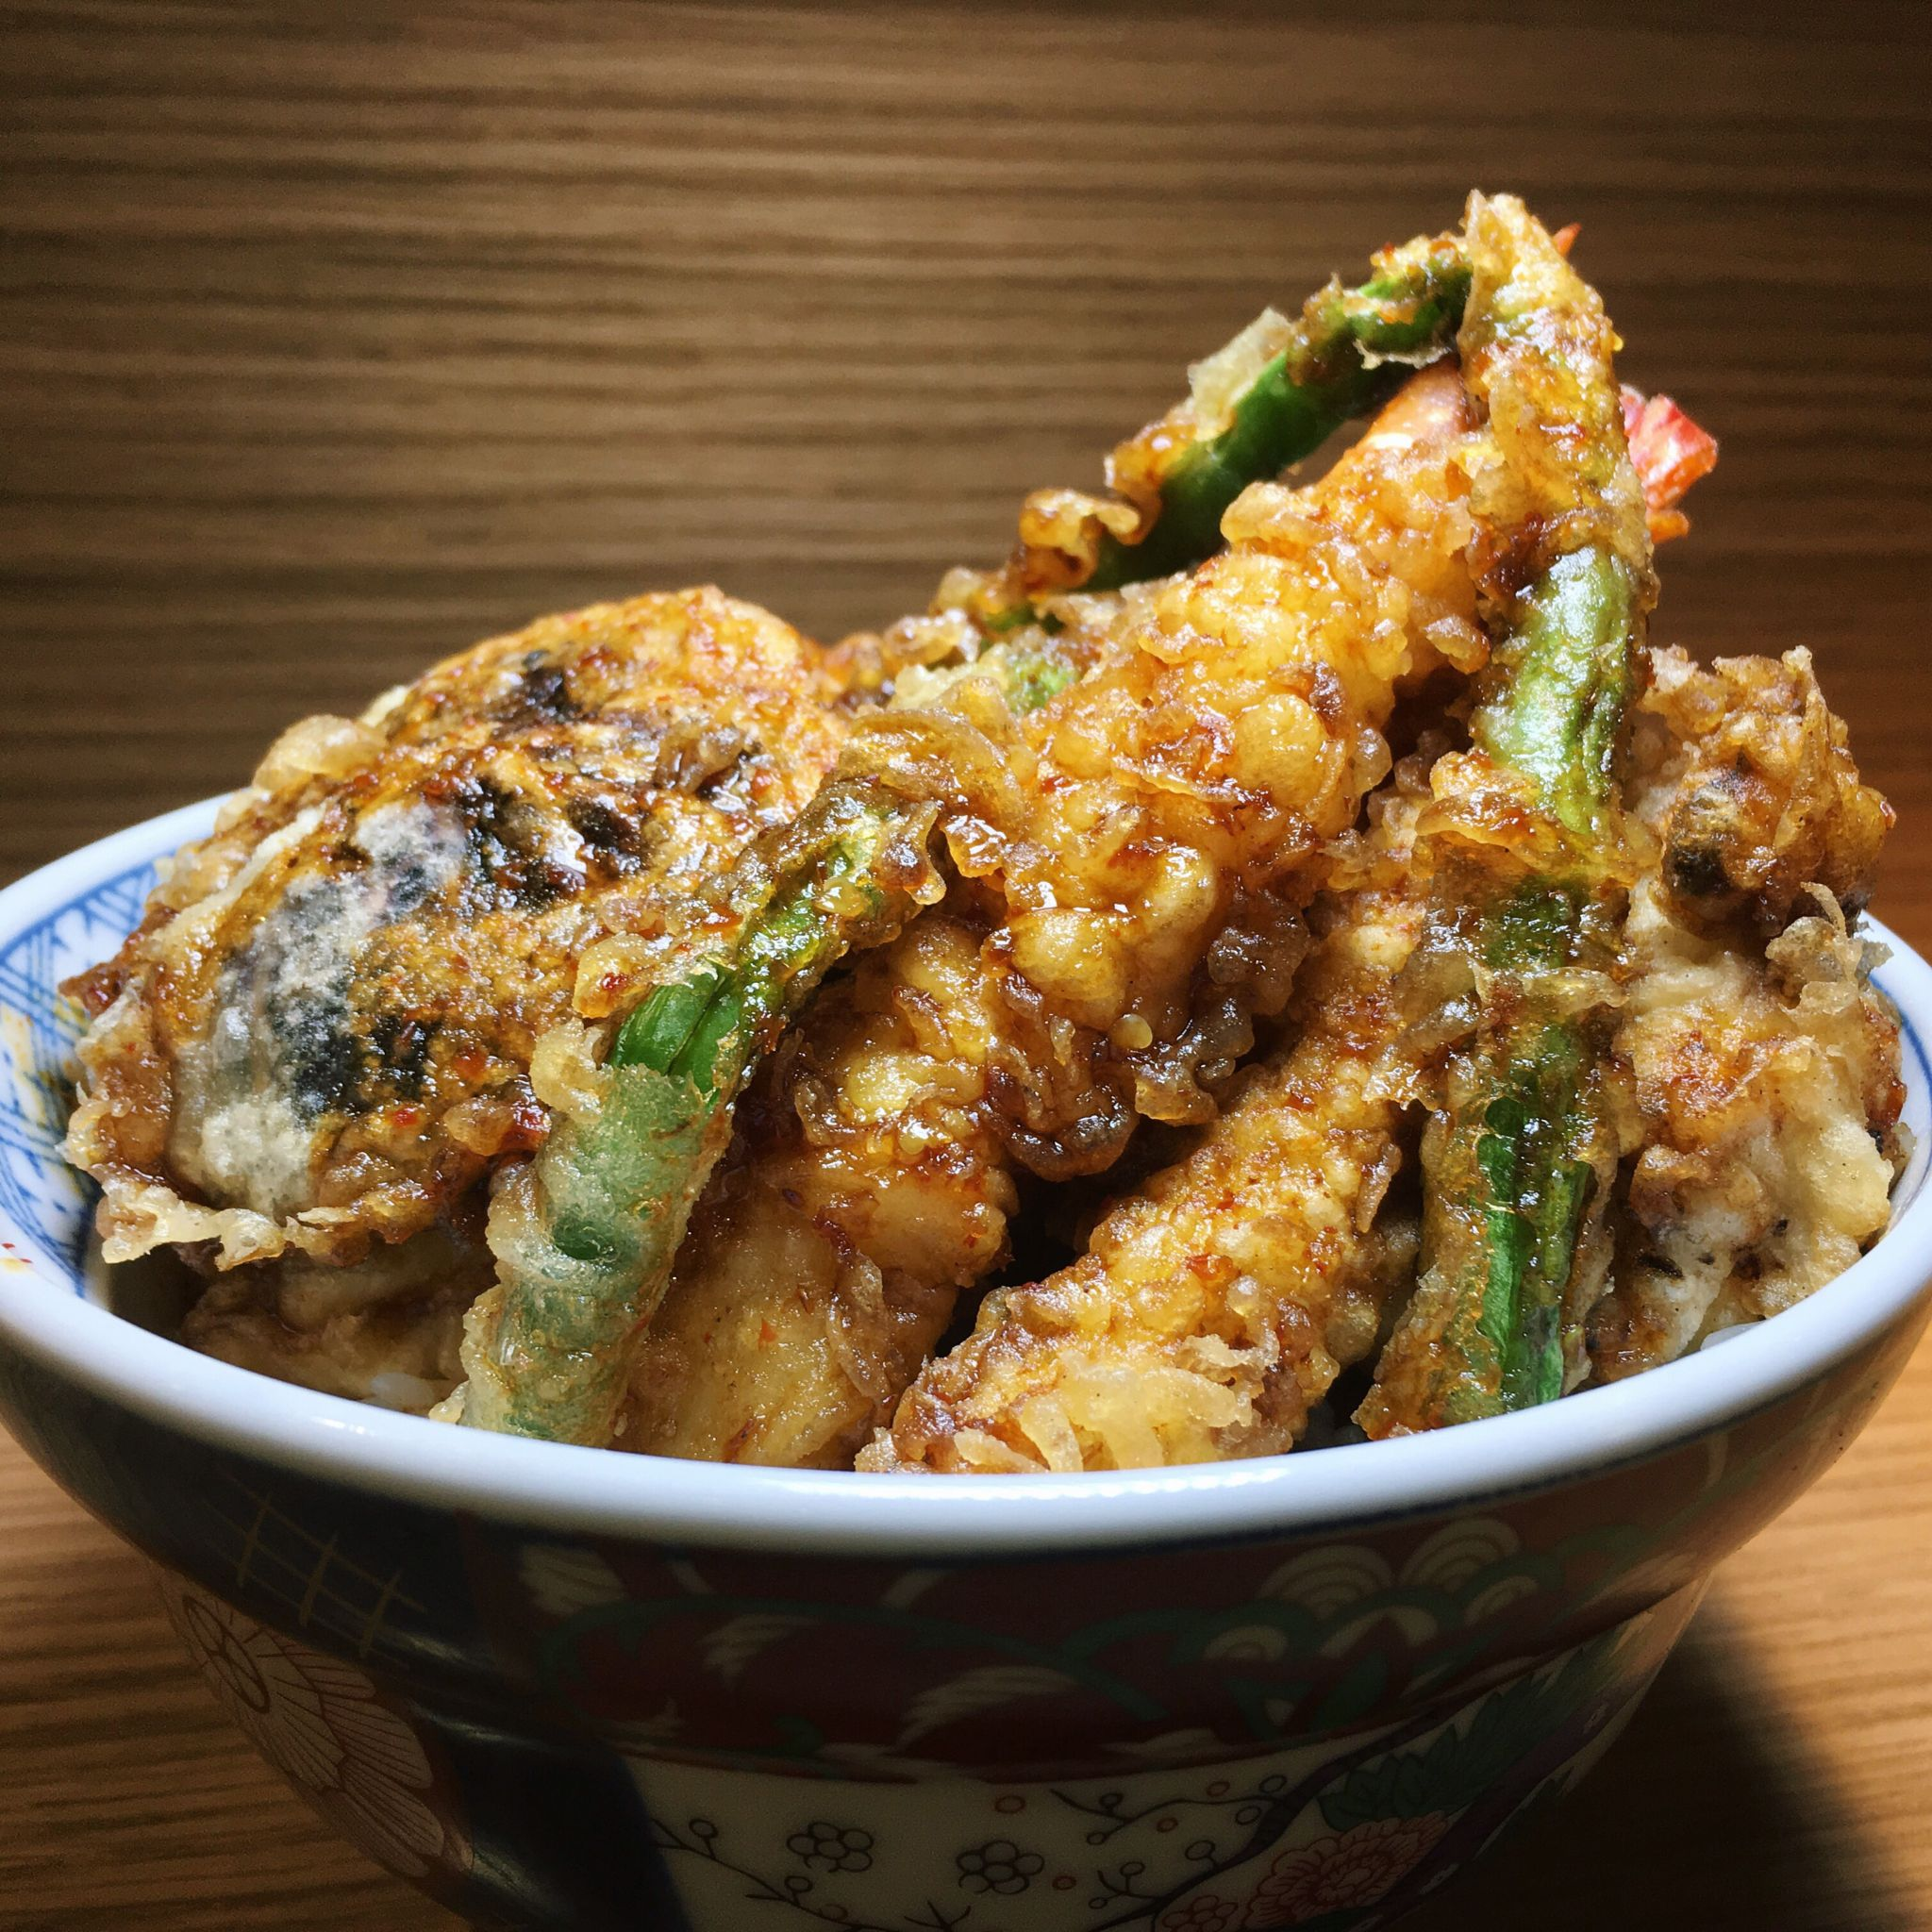 Tendon Spicy Flavour - Tempura Kohaku